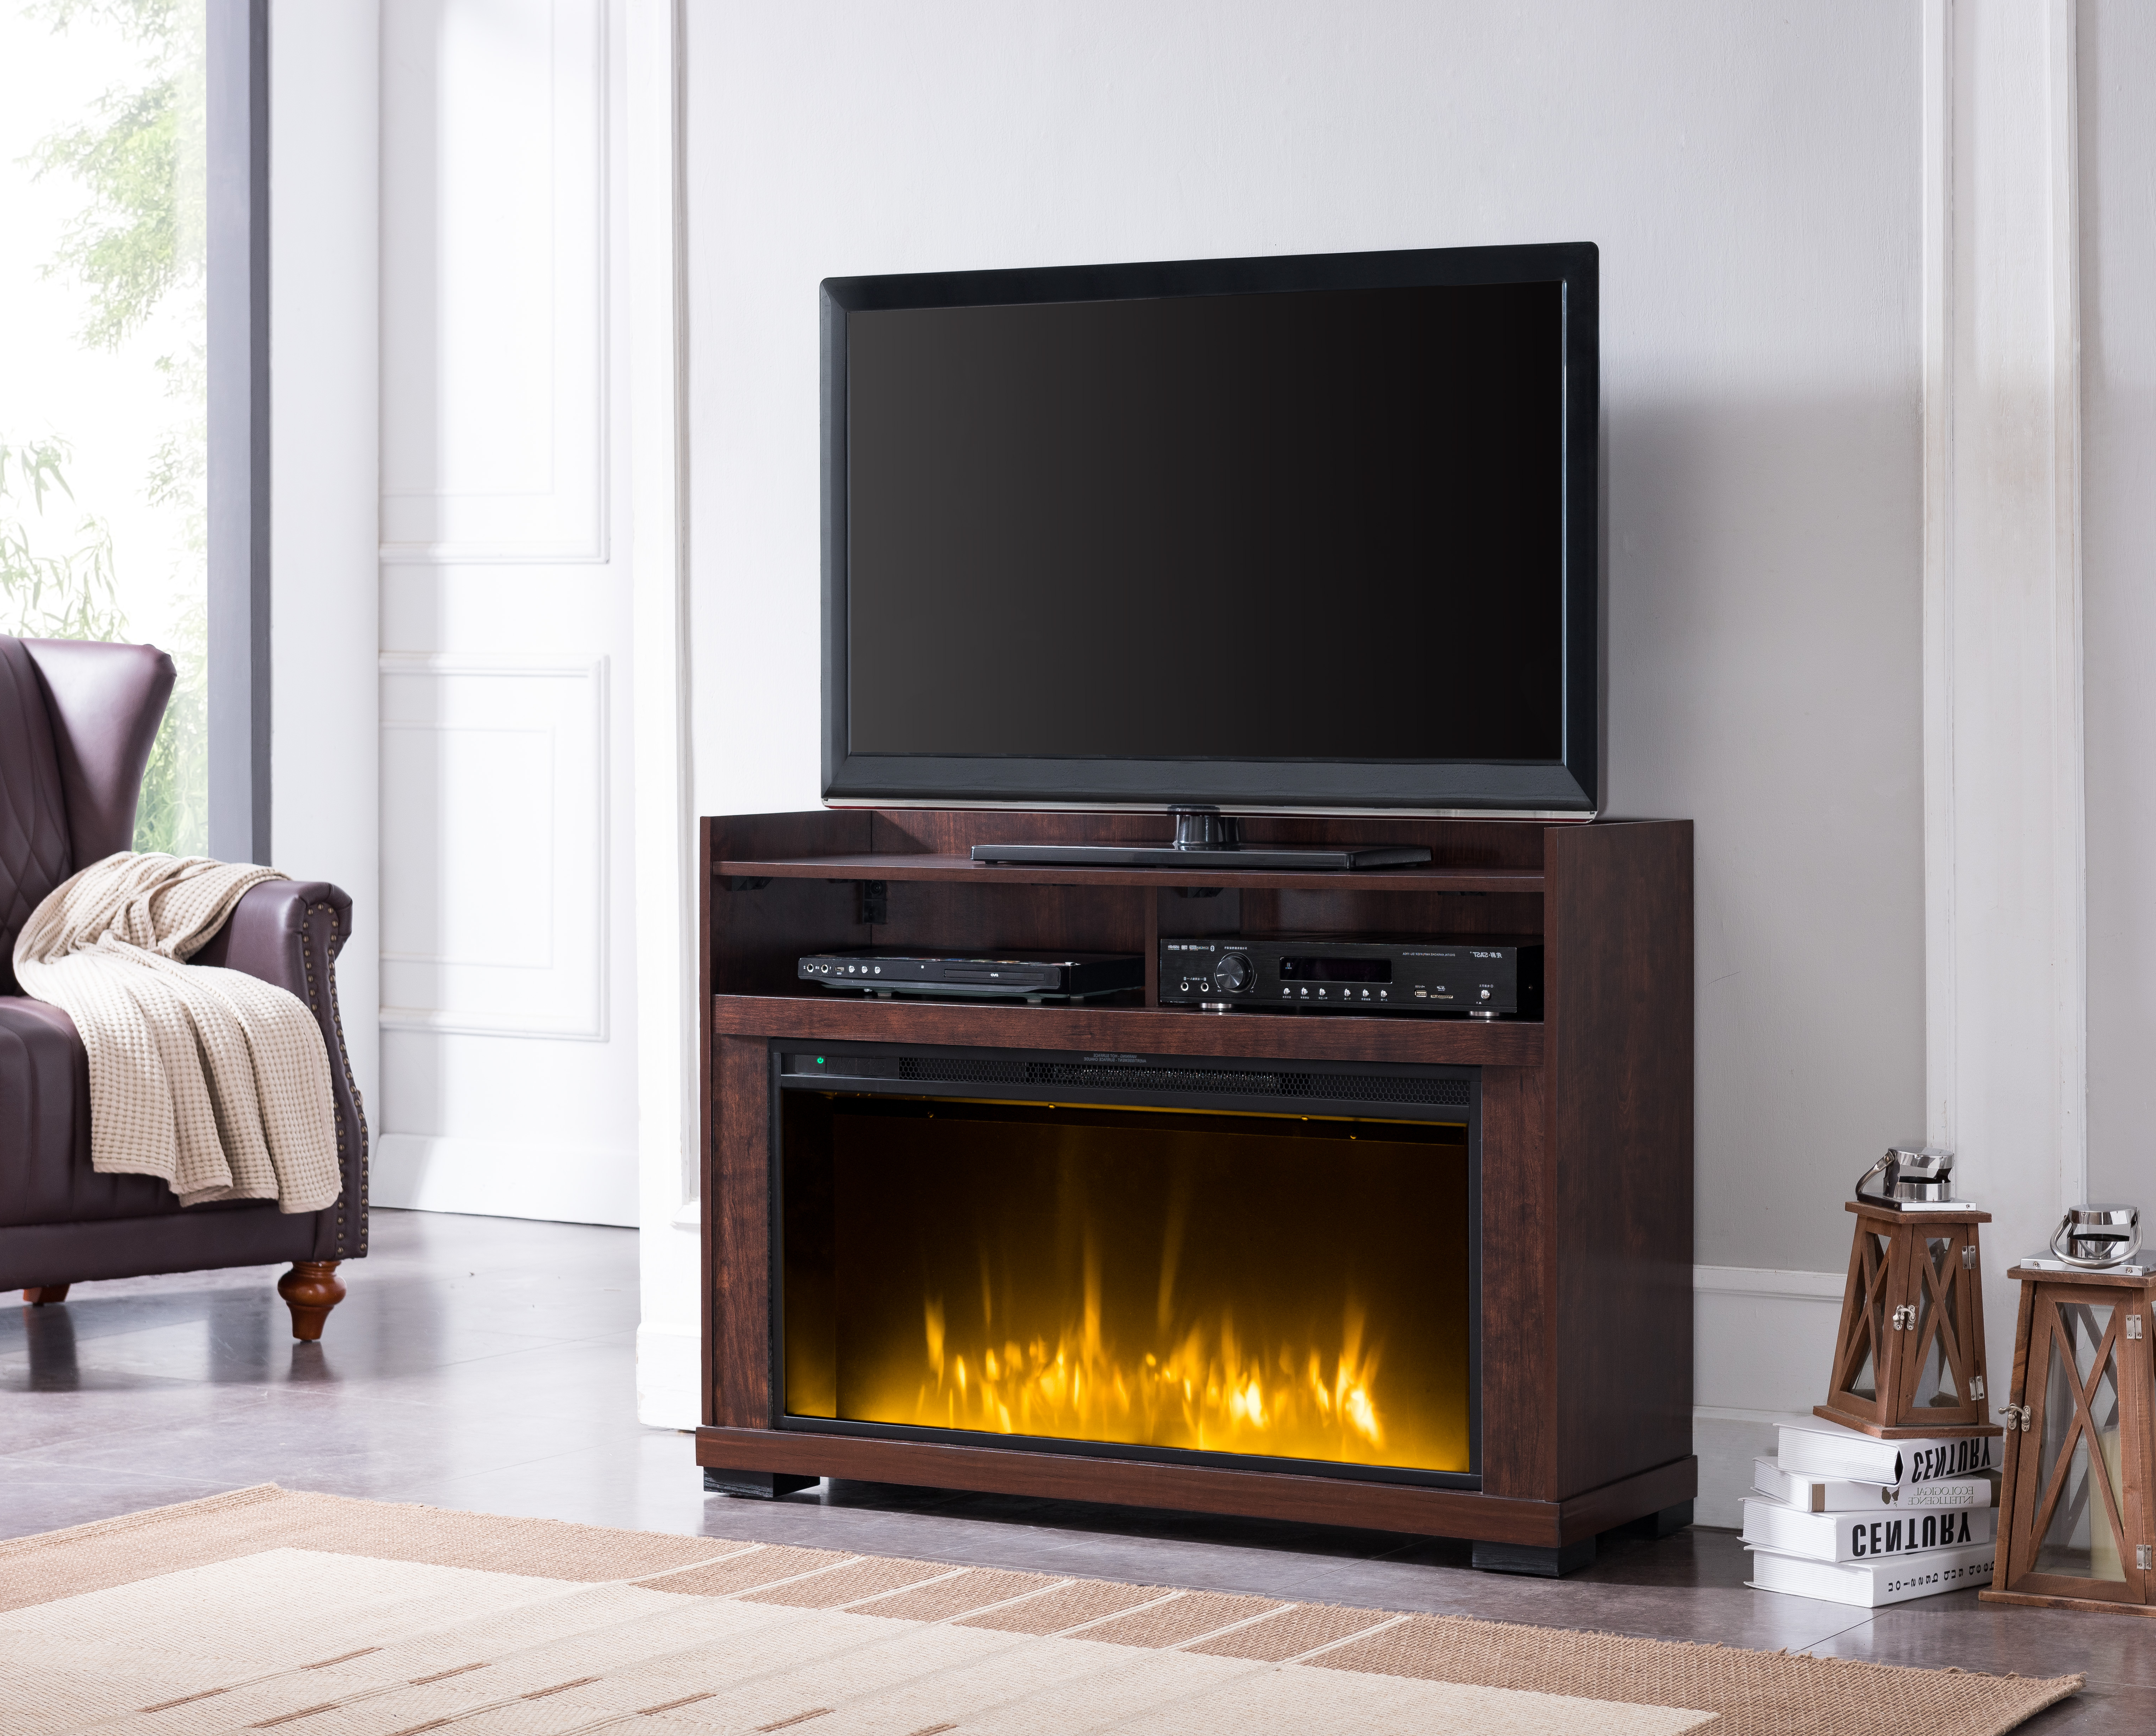 Most Popular Tv Stands With Baskets With Regard To Tv Stands & Entertainment Centers – Walmart (View 15 of 20)